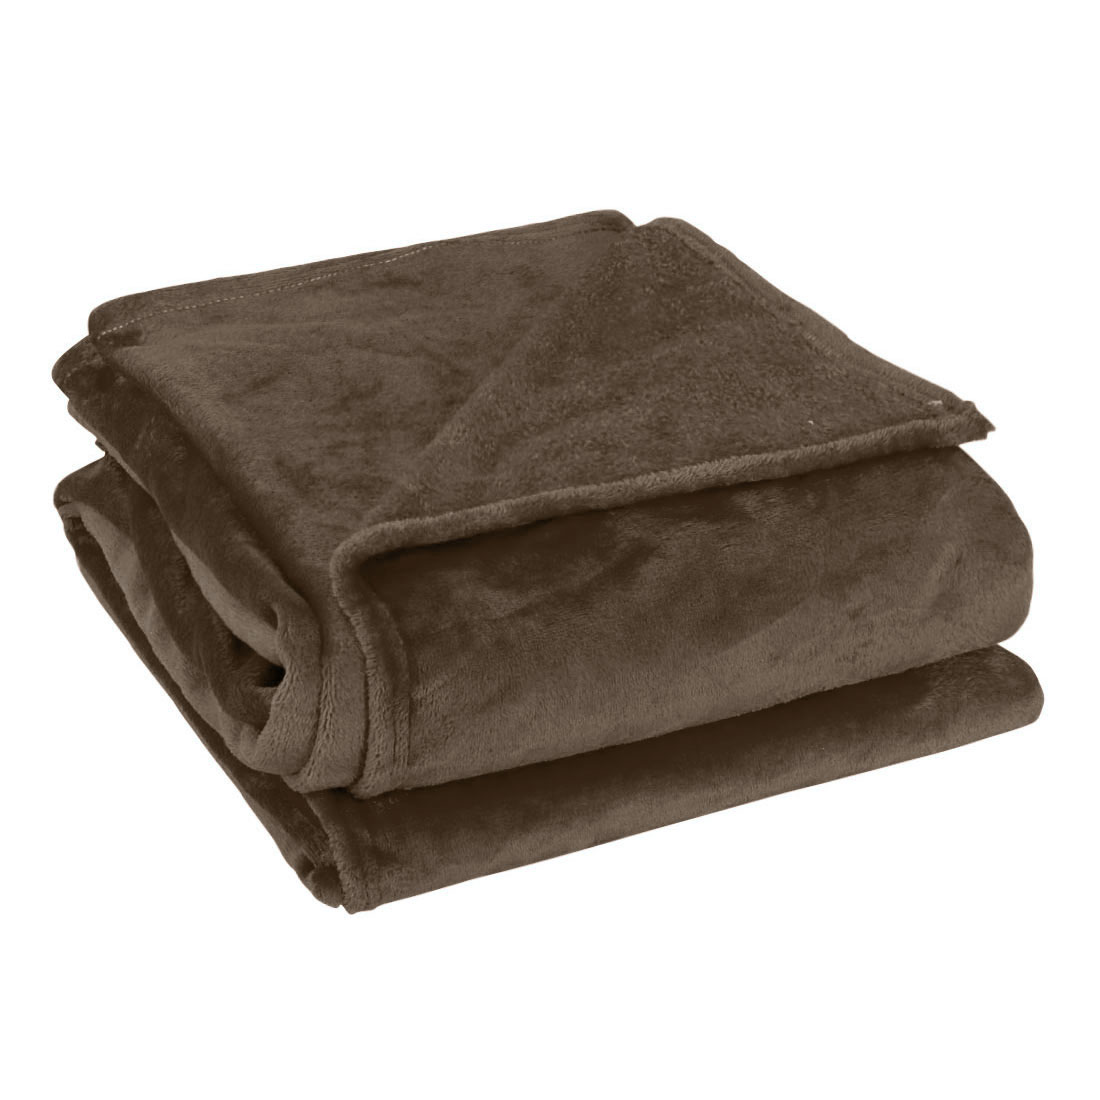 Twin Size Home Bedroom Bed Sofa Warm Plush Couch Throws Blanket Soft Chocolate Color 150 x 200cm